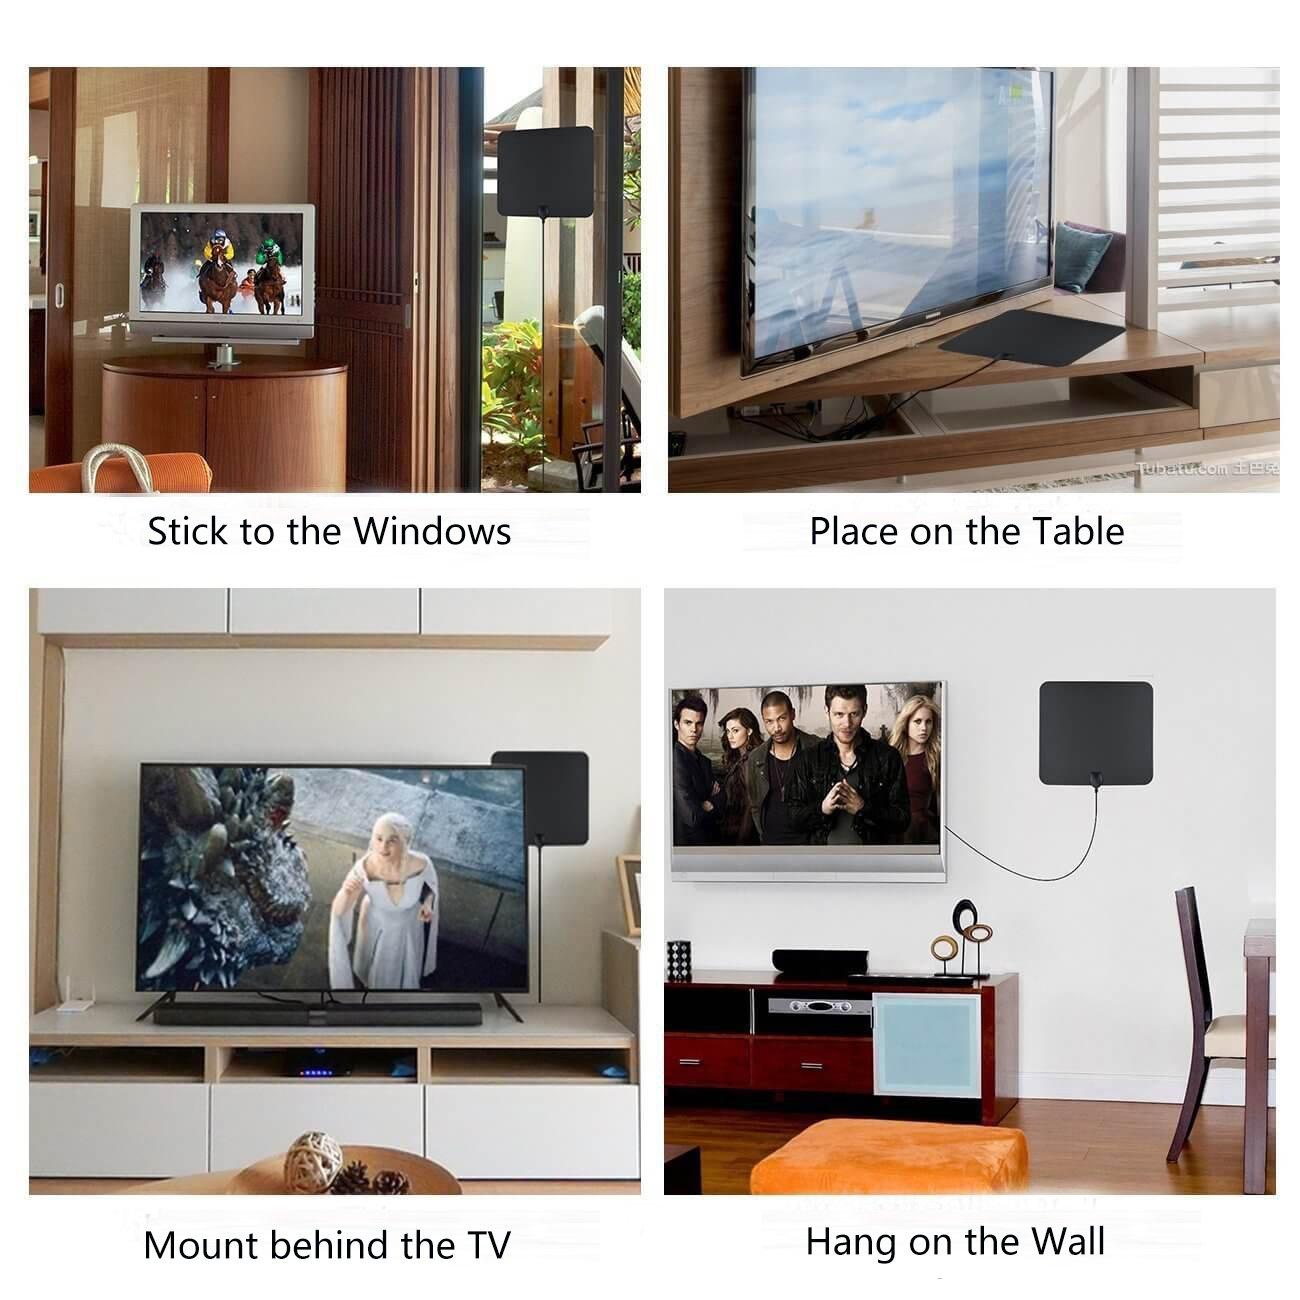 [NEWEST 2018] Wsky TV Antenna, 50-80 Long Miles Amplified HD Digital TV Antenna – Support 4K 1080p & All Older TV's for Indoor with Powerful HDTV Amplifier Signal Booster - Long Coax Cable by Wsky (Image #3)